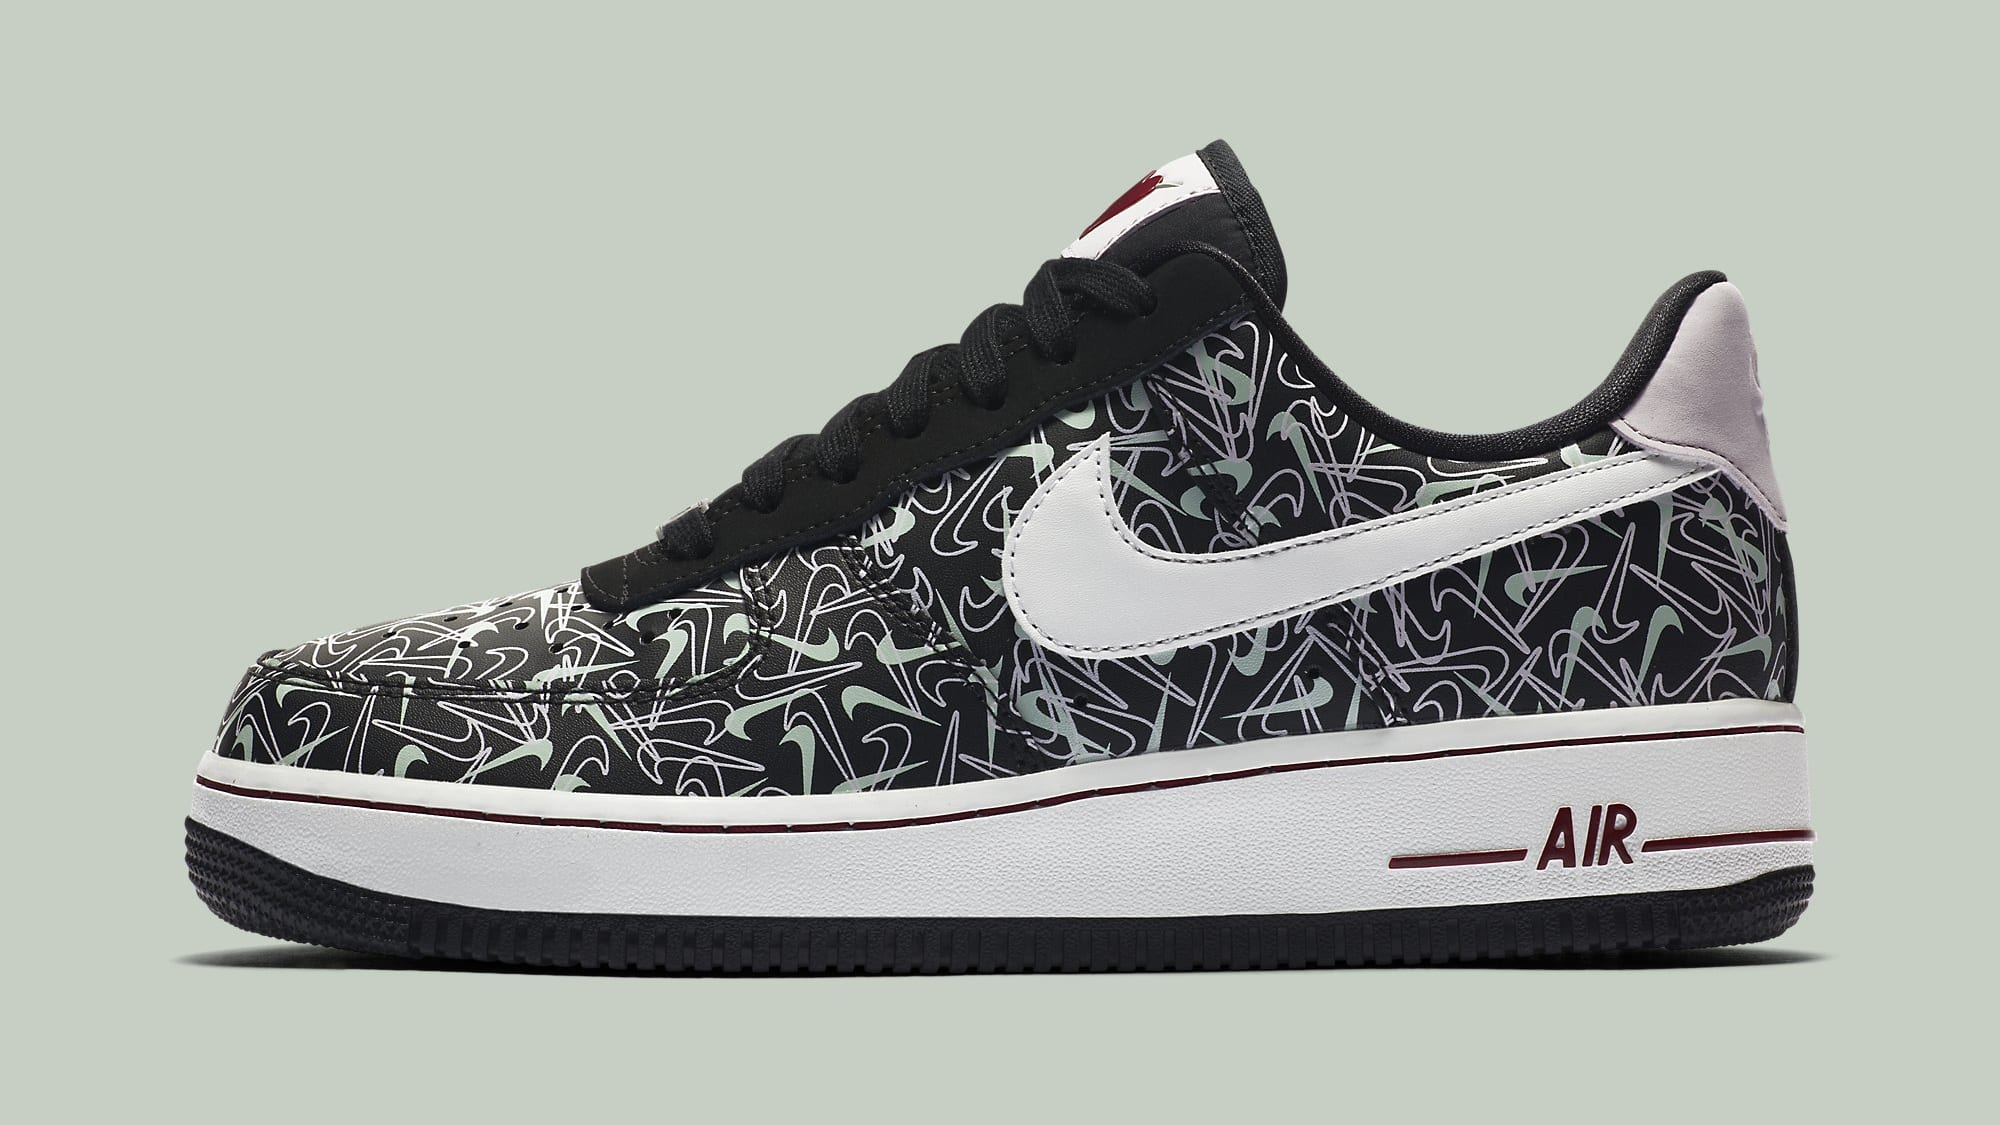 nike-air-force-1-low-valentines-day-2020-bv0319-002-lateral